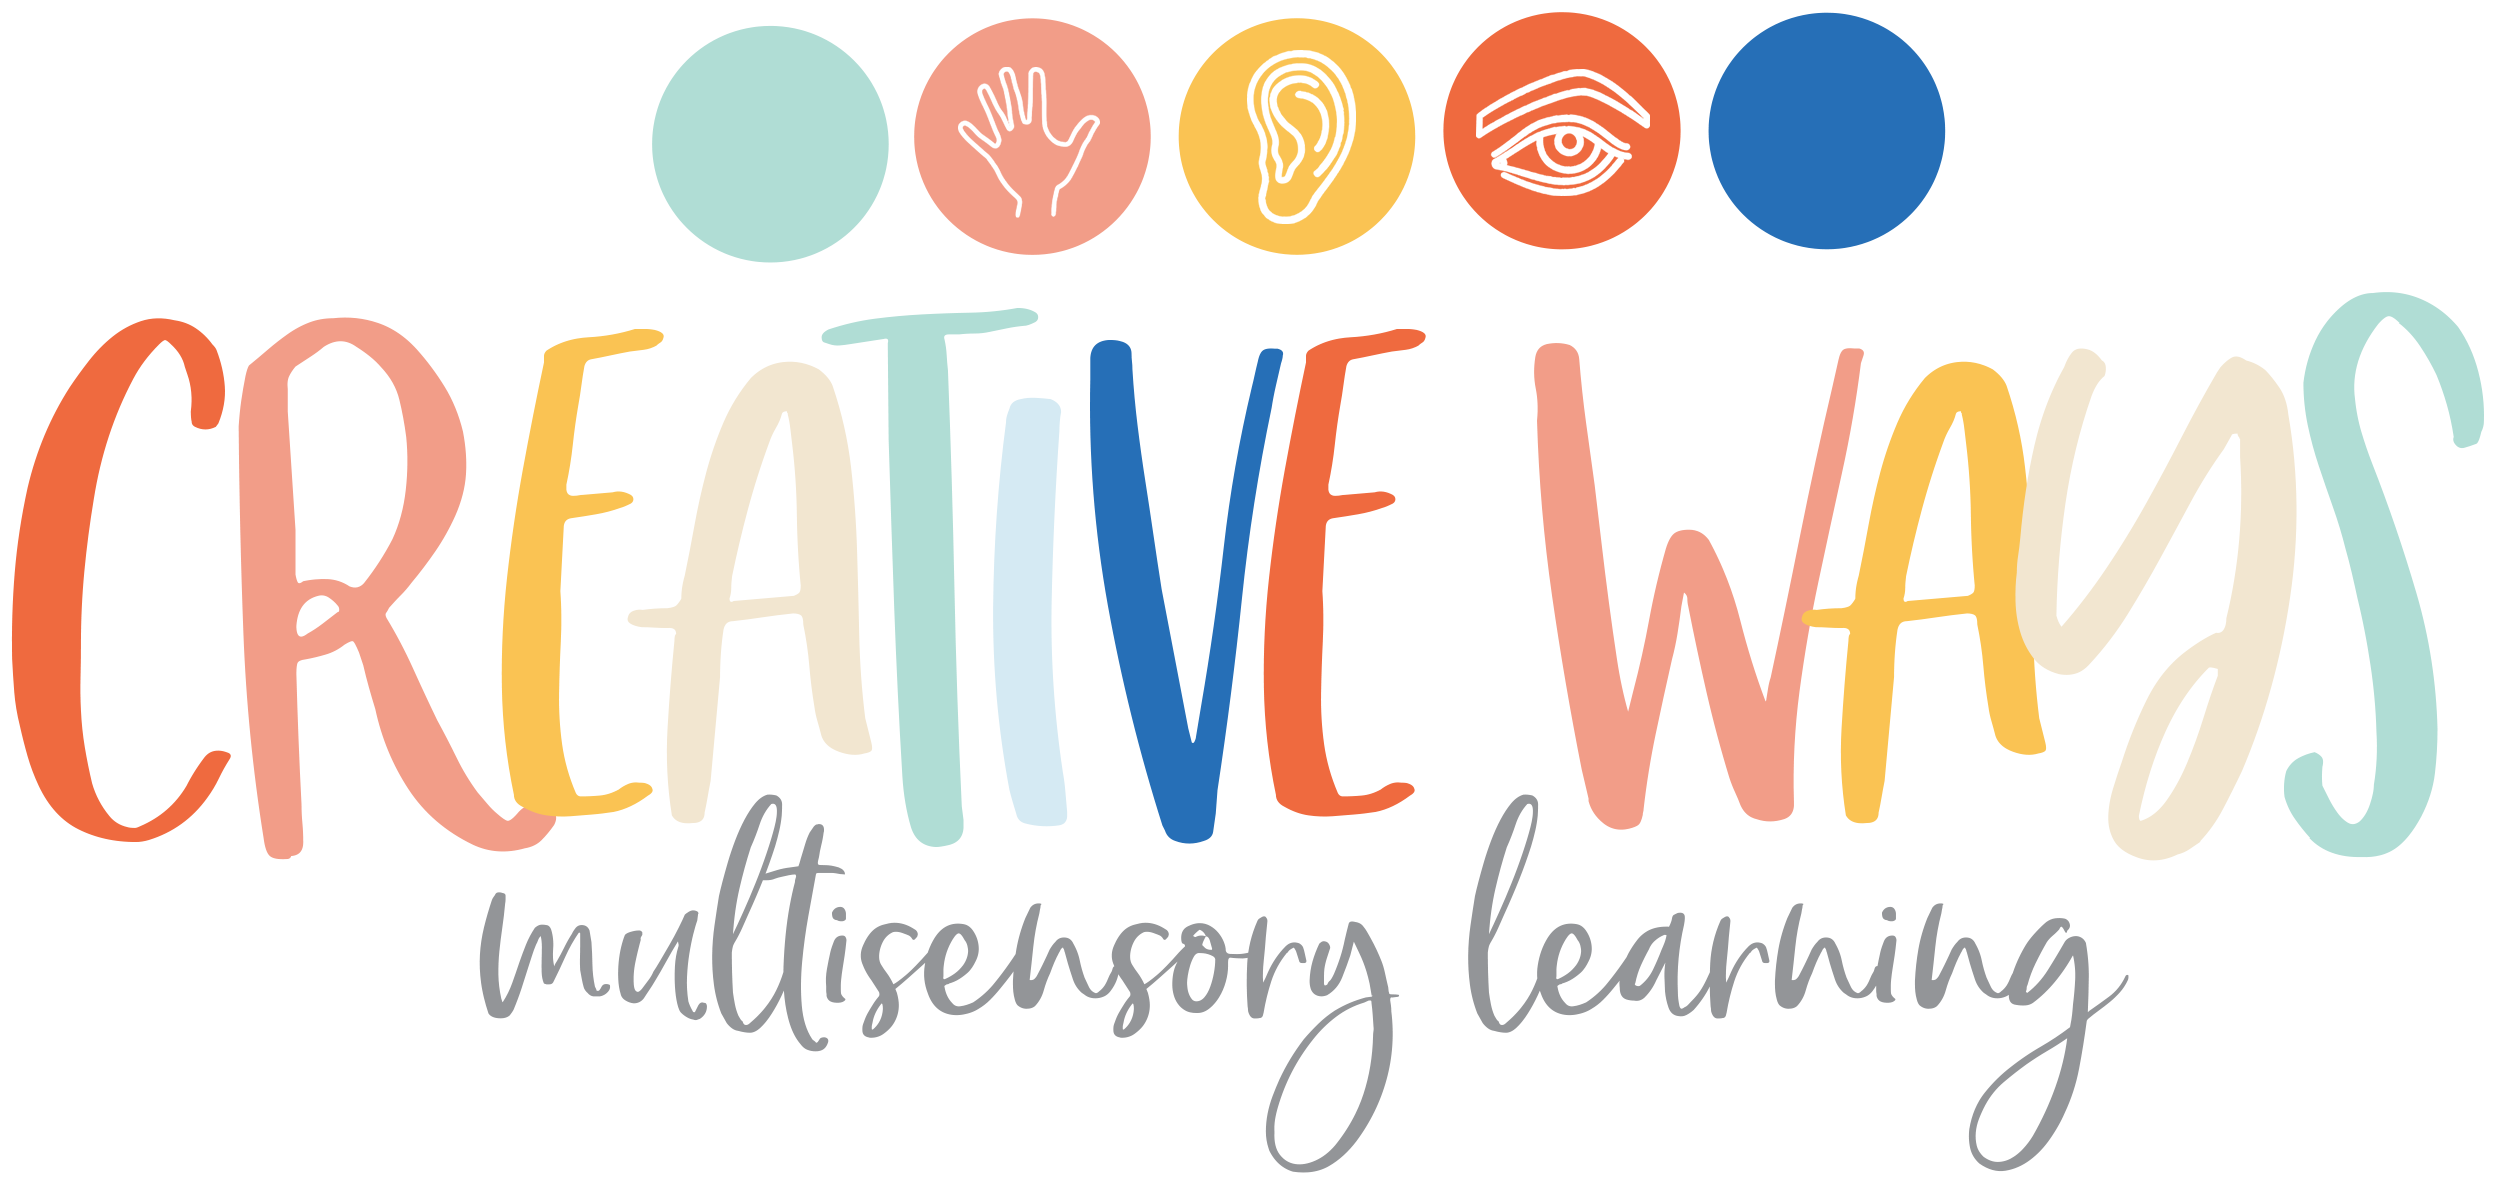 Creative Ways Multisensory Learning